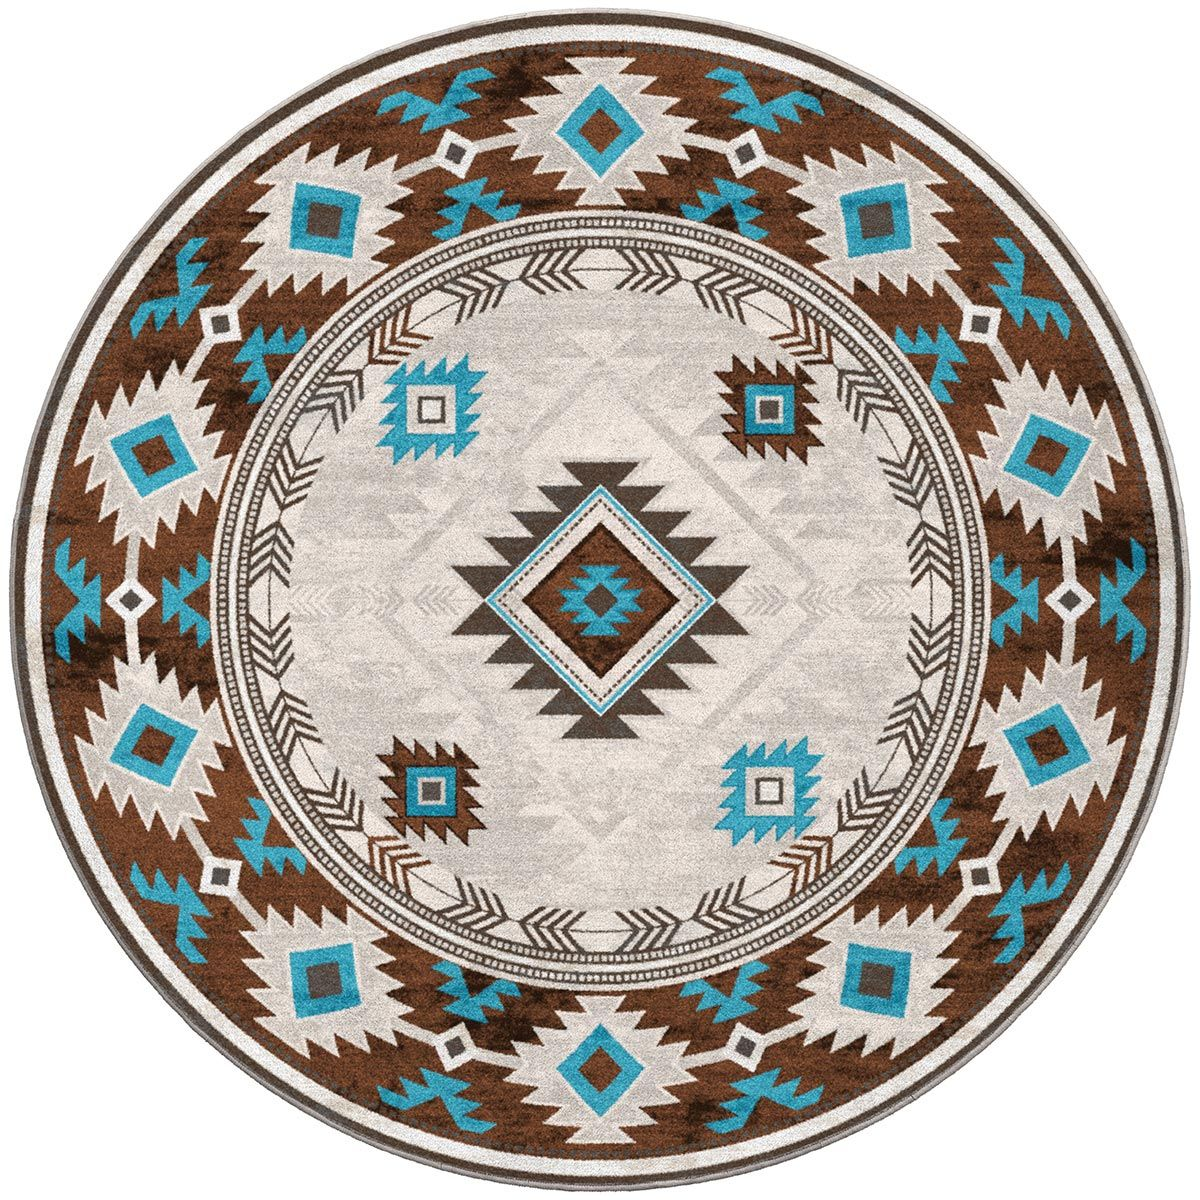 Whiskey River Glacier Rug - 8 Ft. Round